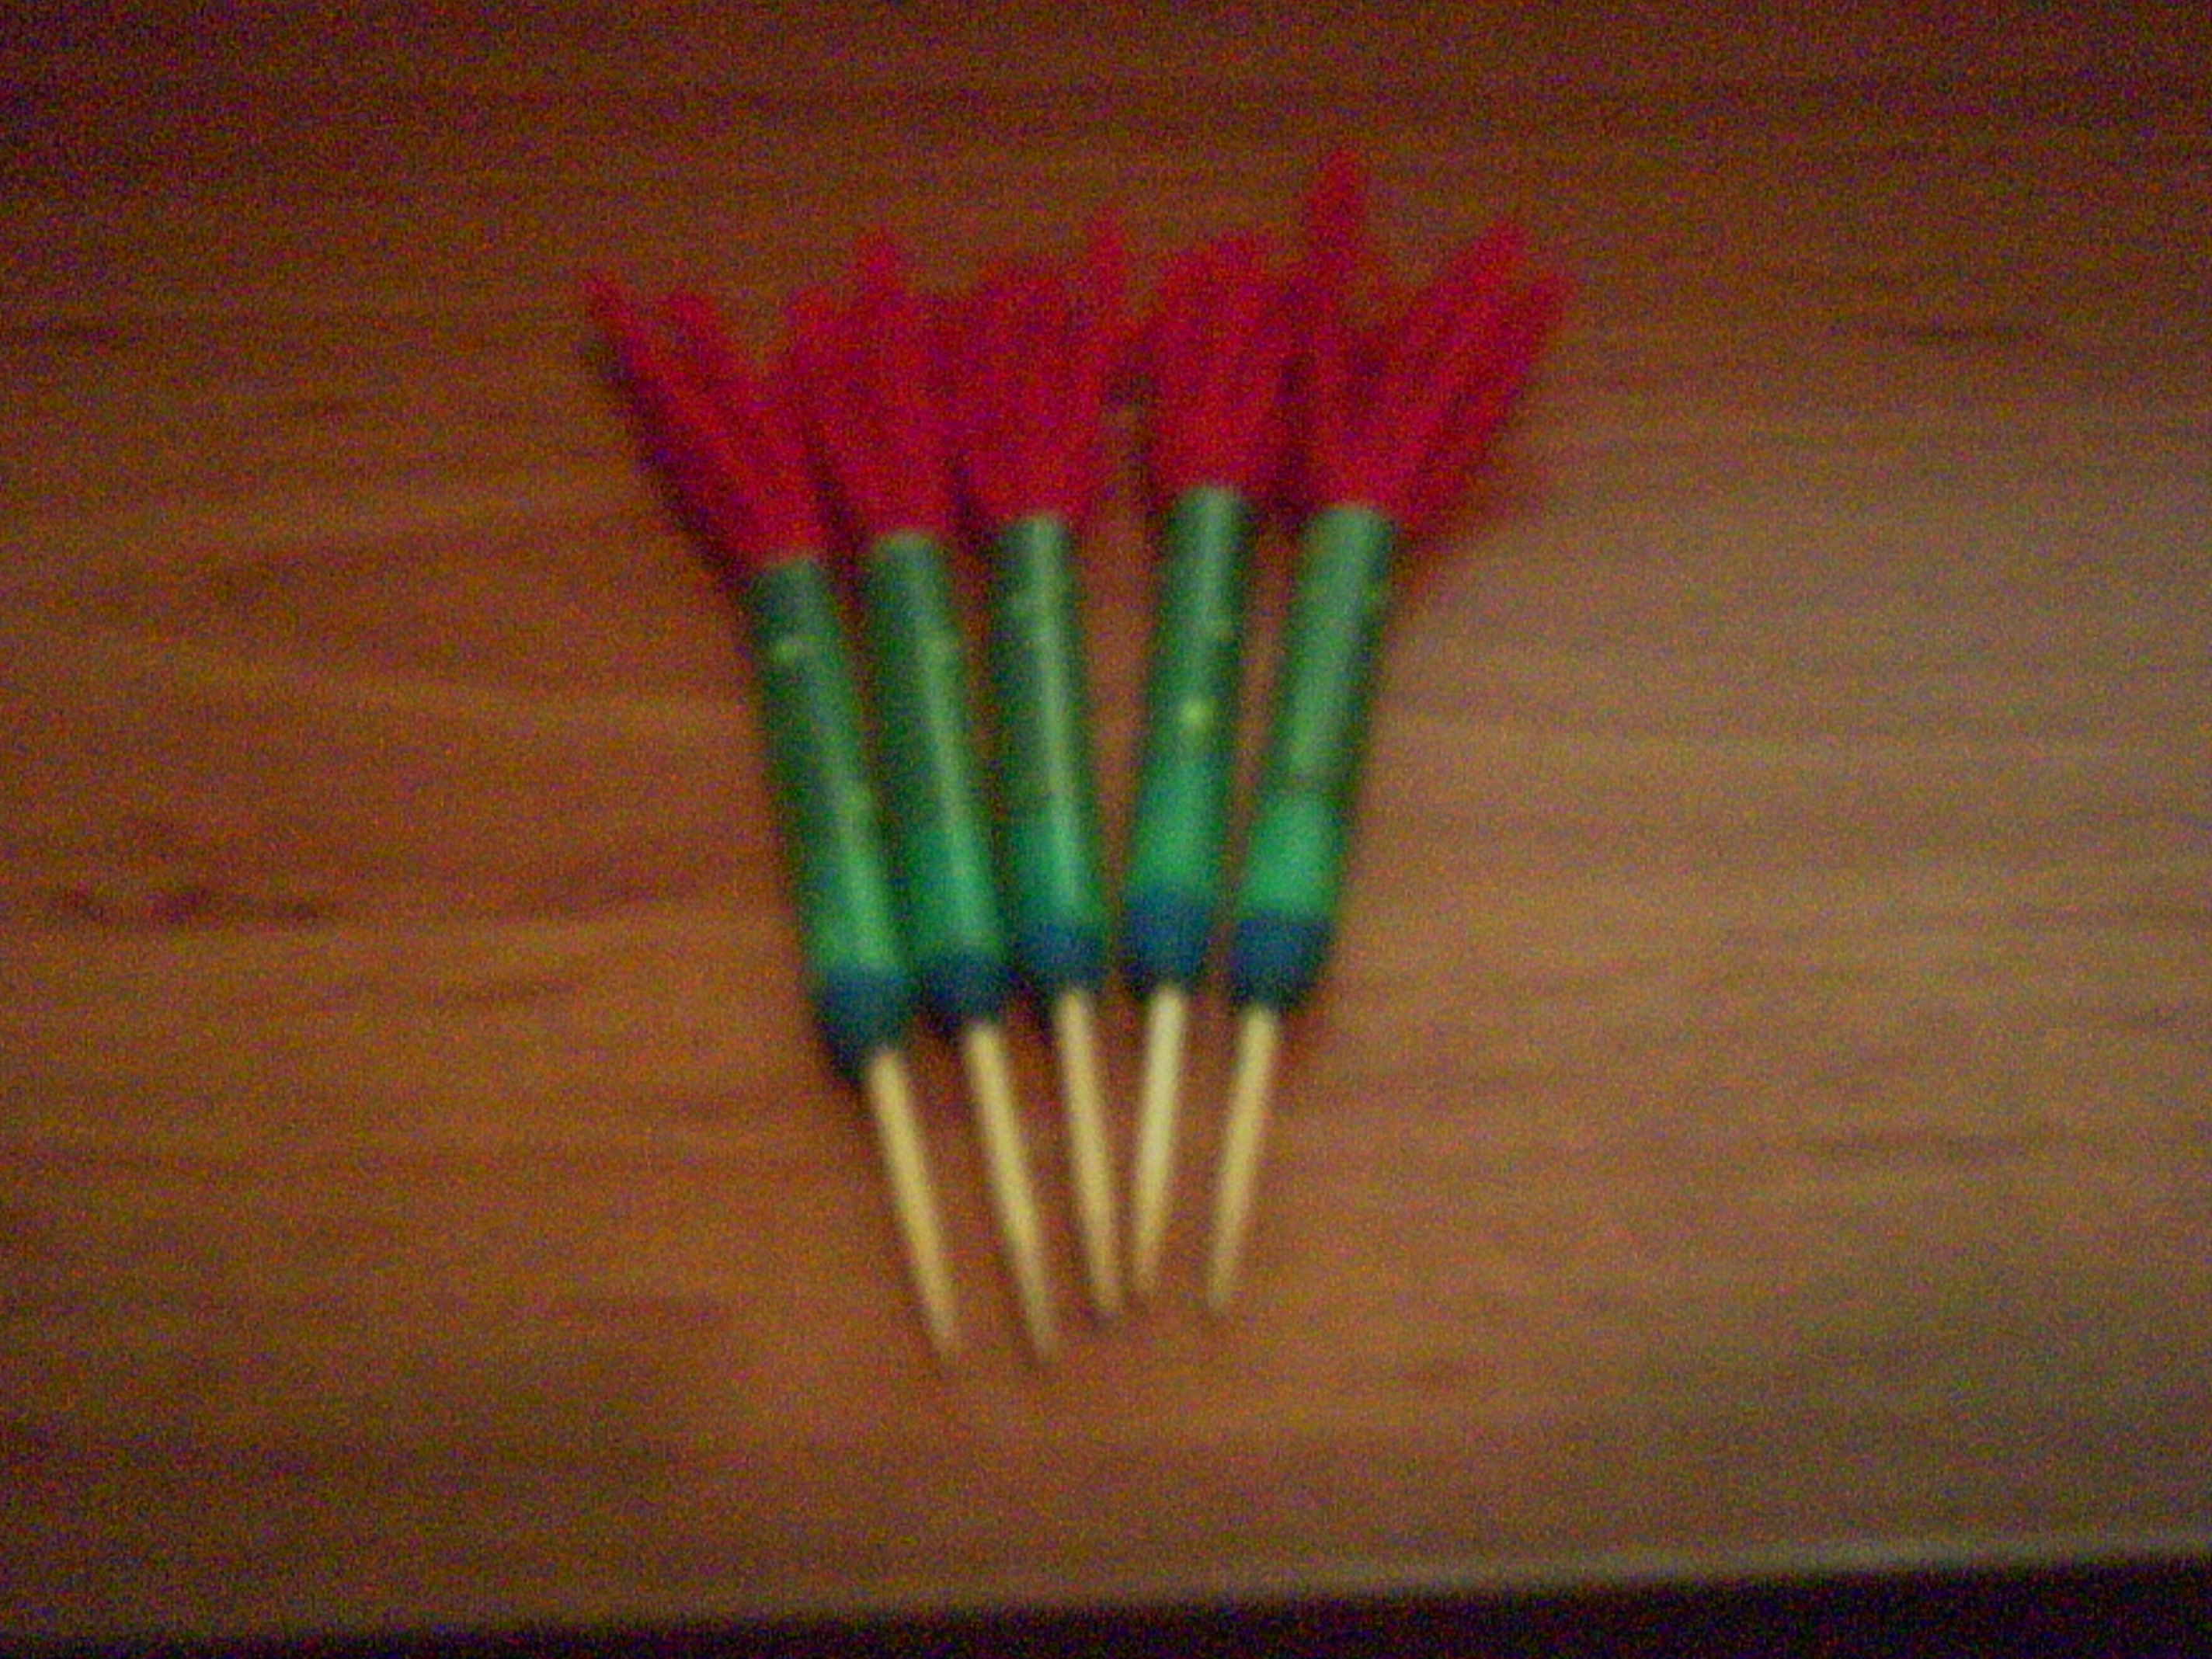 Picture of Make Blowgun Darts Out of Ordinary Stuff